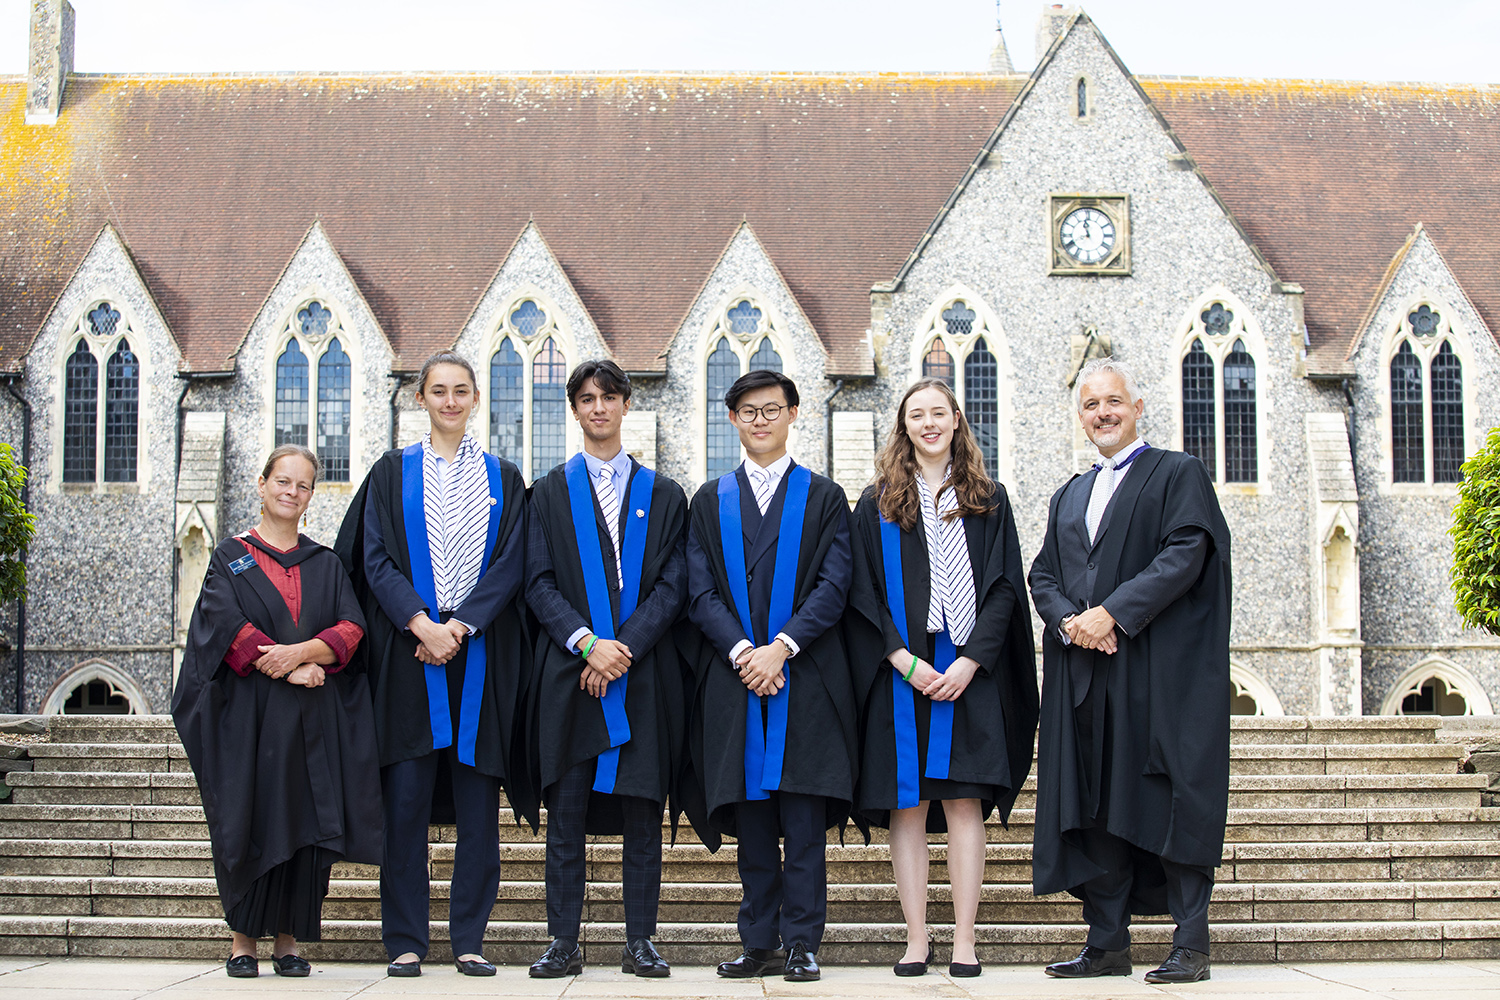 Lancing College Heads of School 2018-19